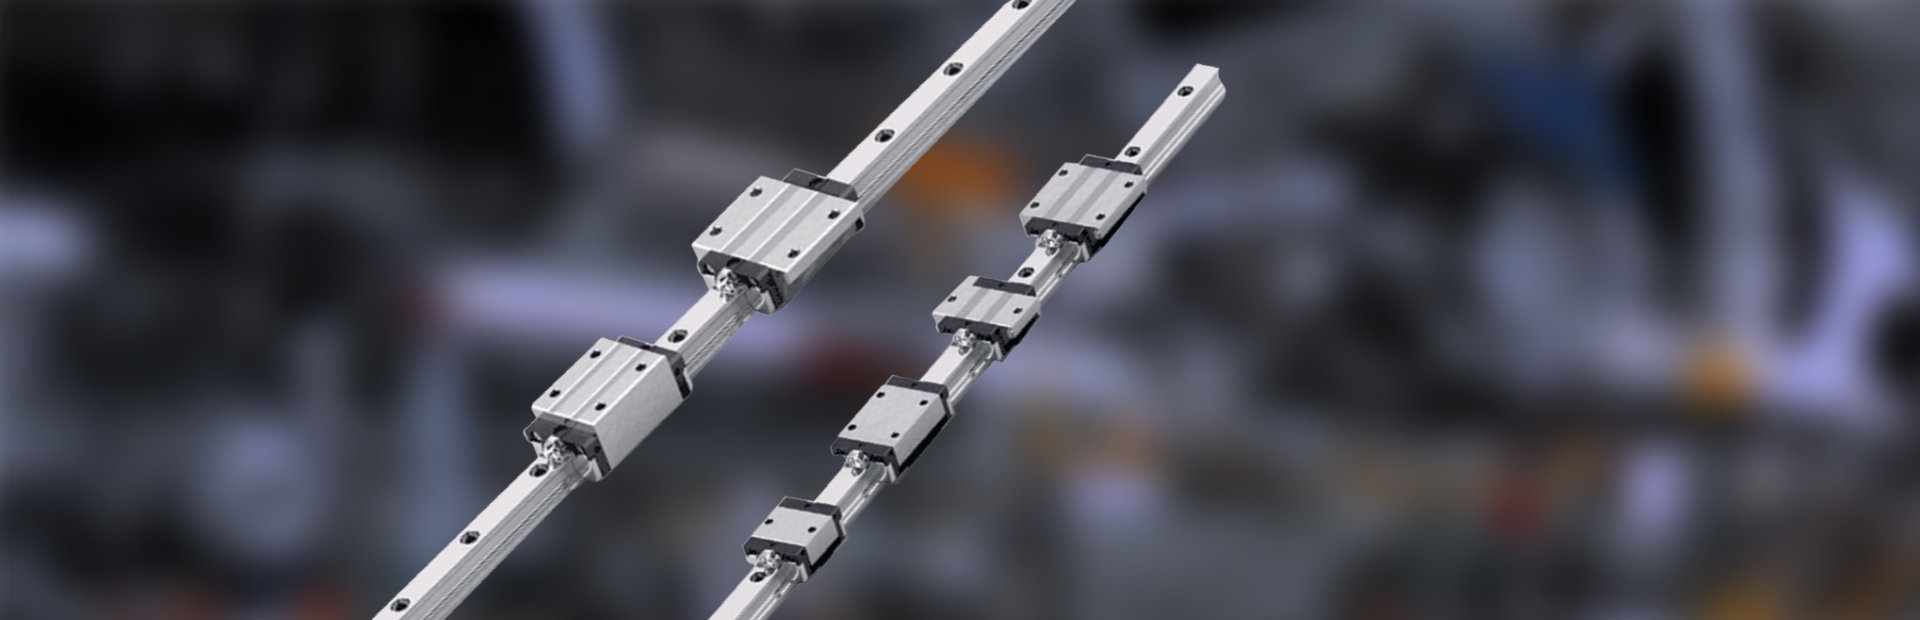 LINEAR Motion INTECNO